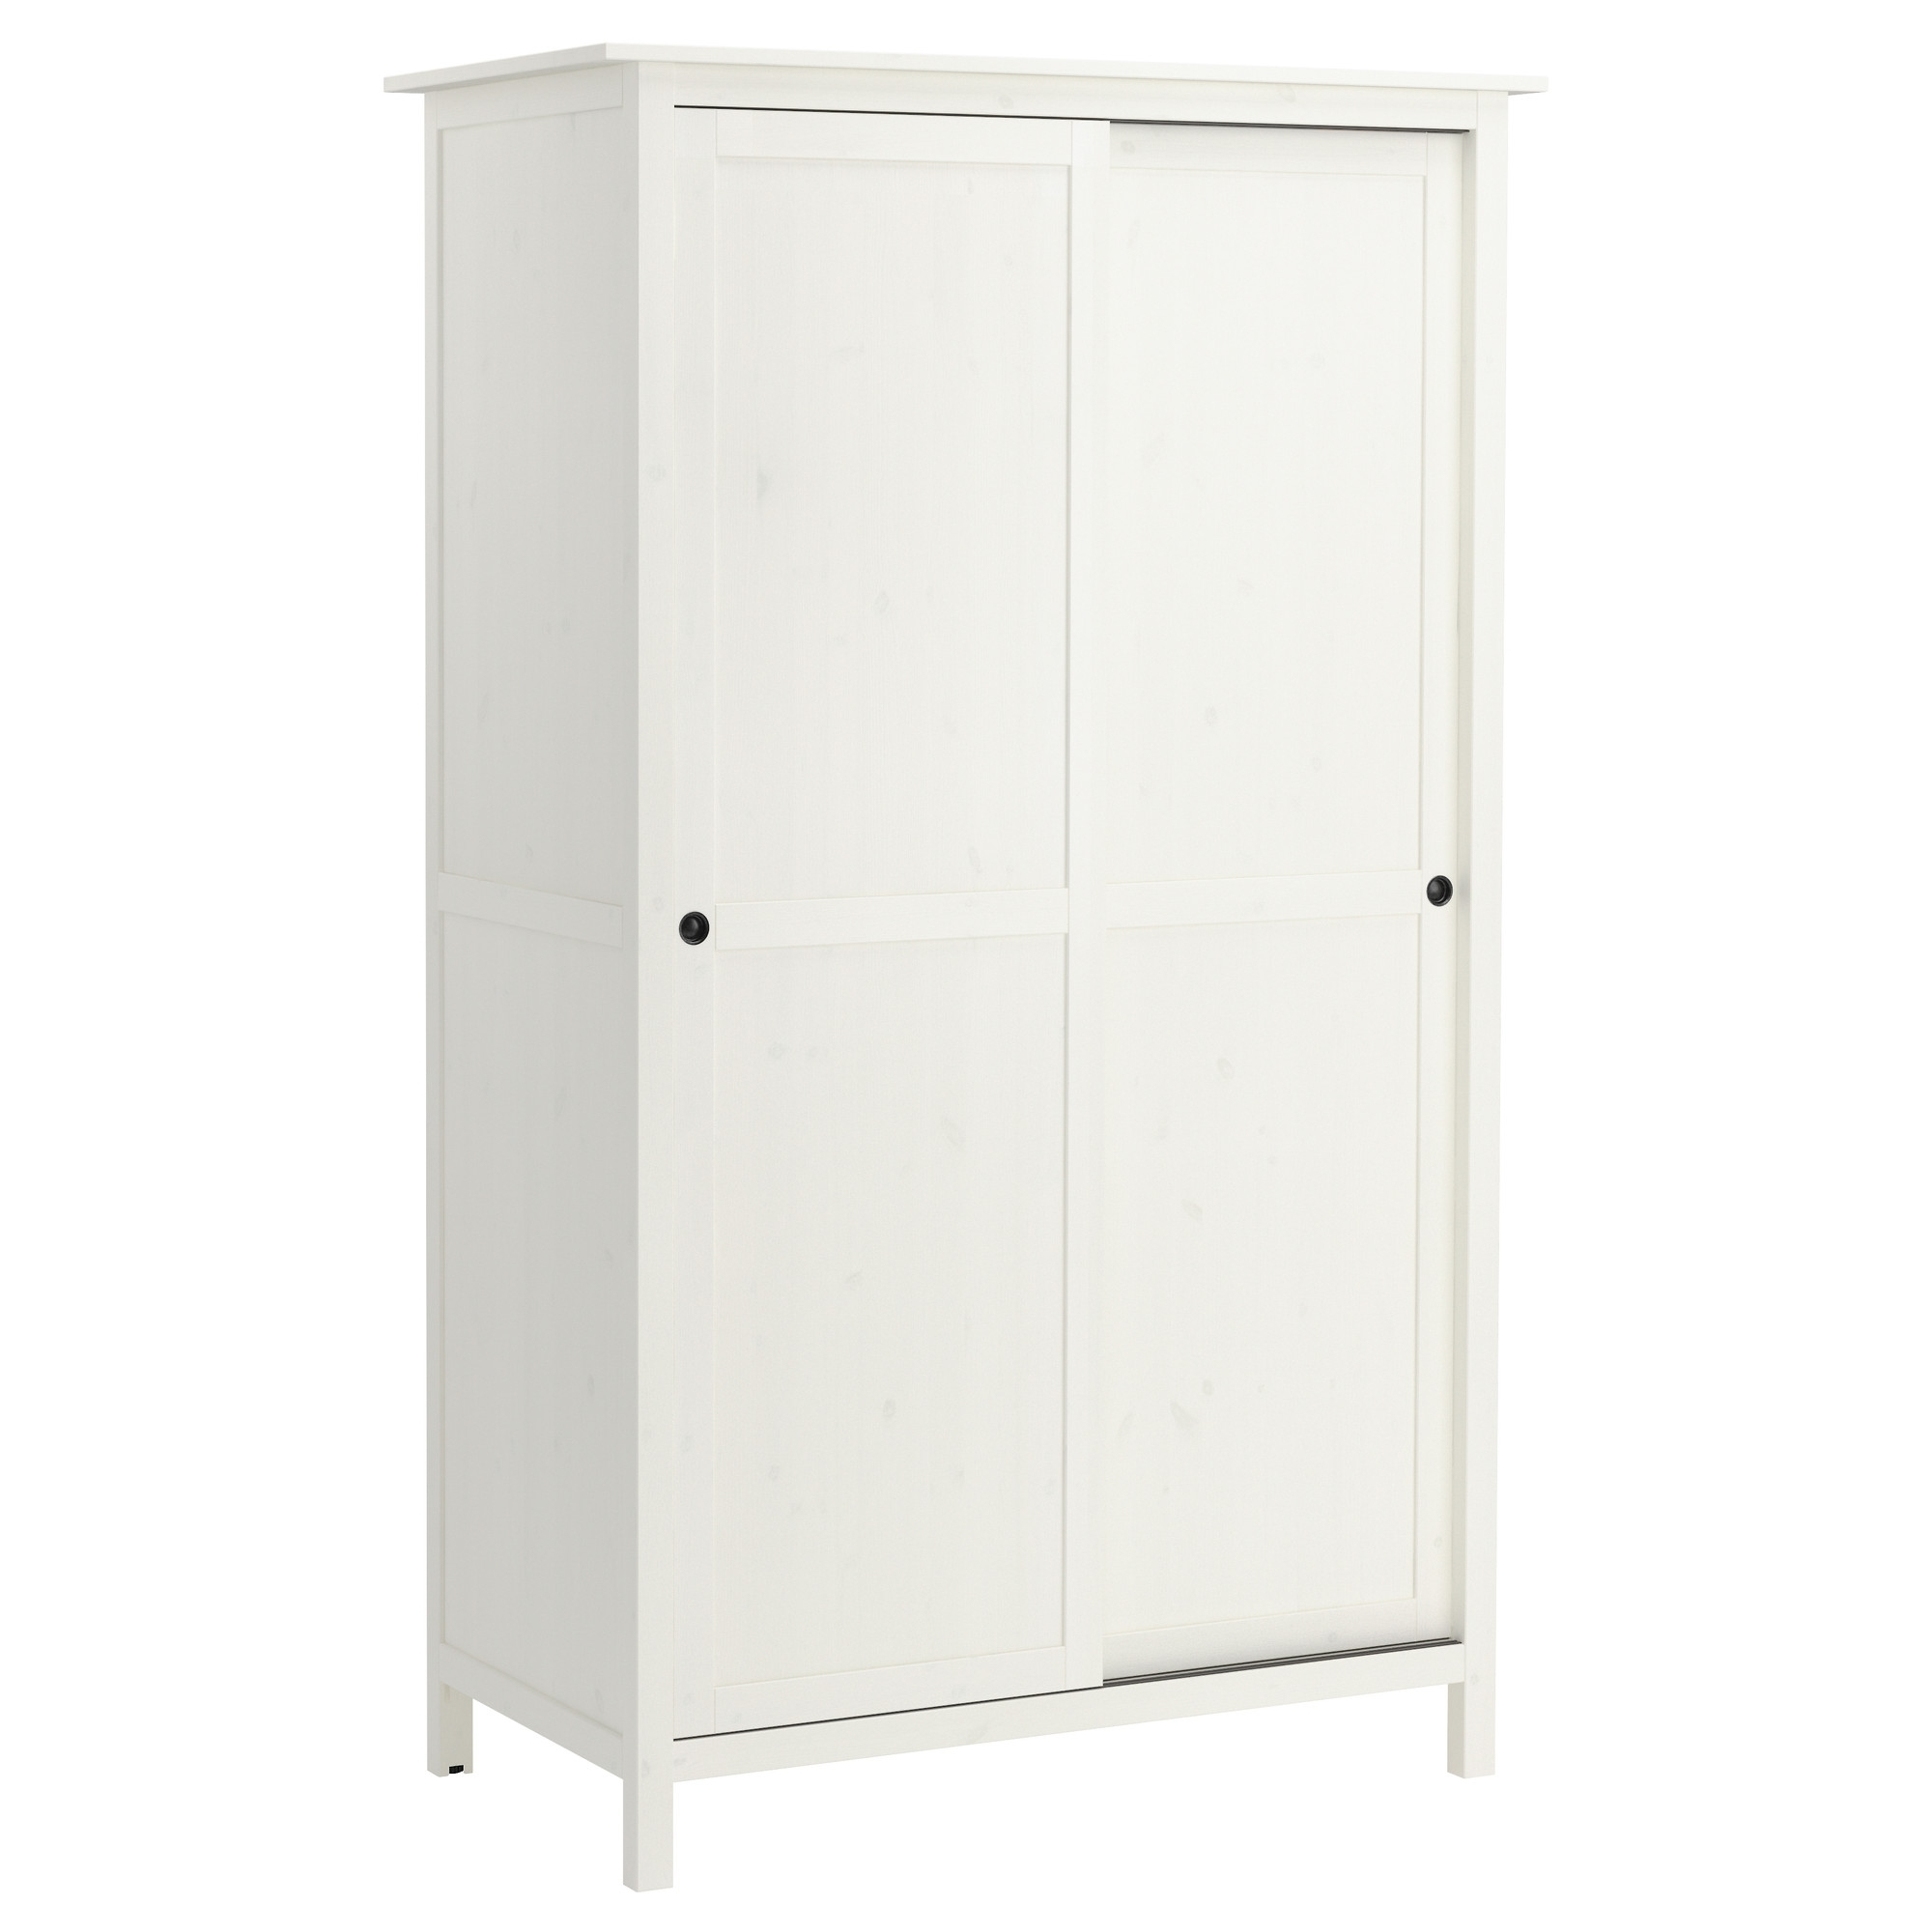 2017 Hemnes Wardrobe With 2 Sliding Doors White Stain 120X197 Cm – Ikea With Regard To White Wooden Wardrobes (View 1 of 15)